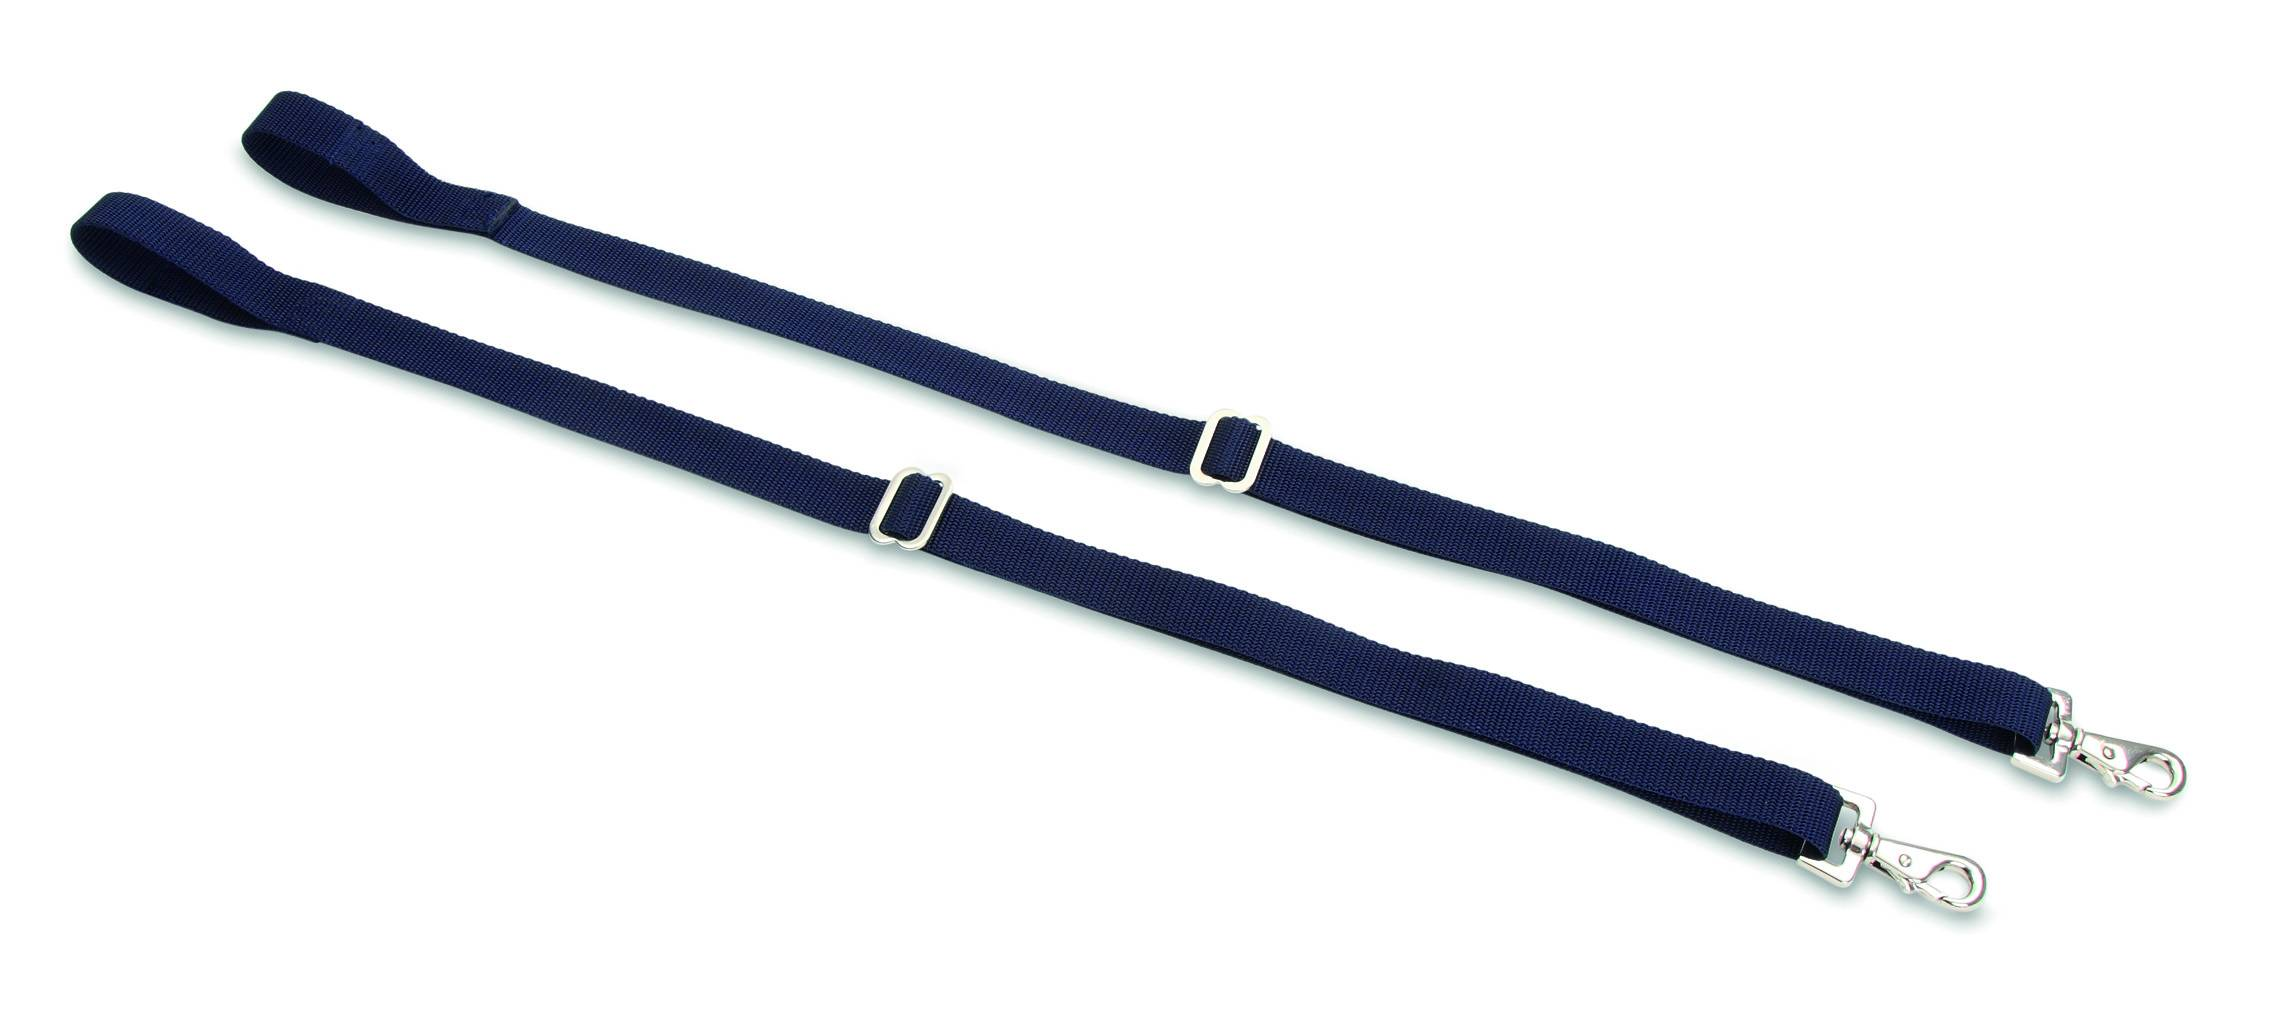 Shires Elastic Replacement Leg Straps